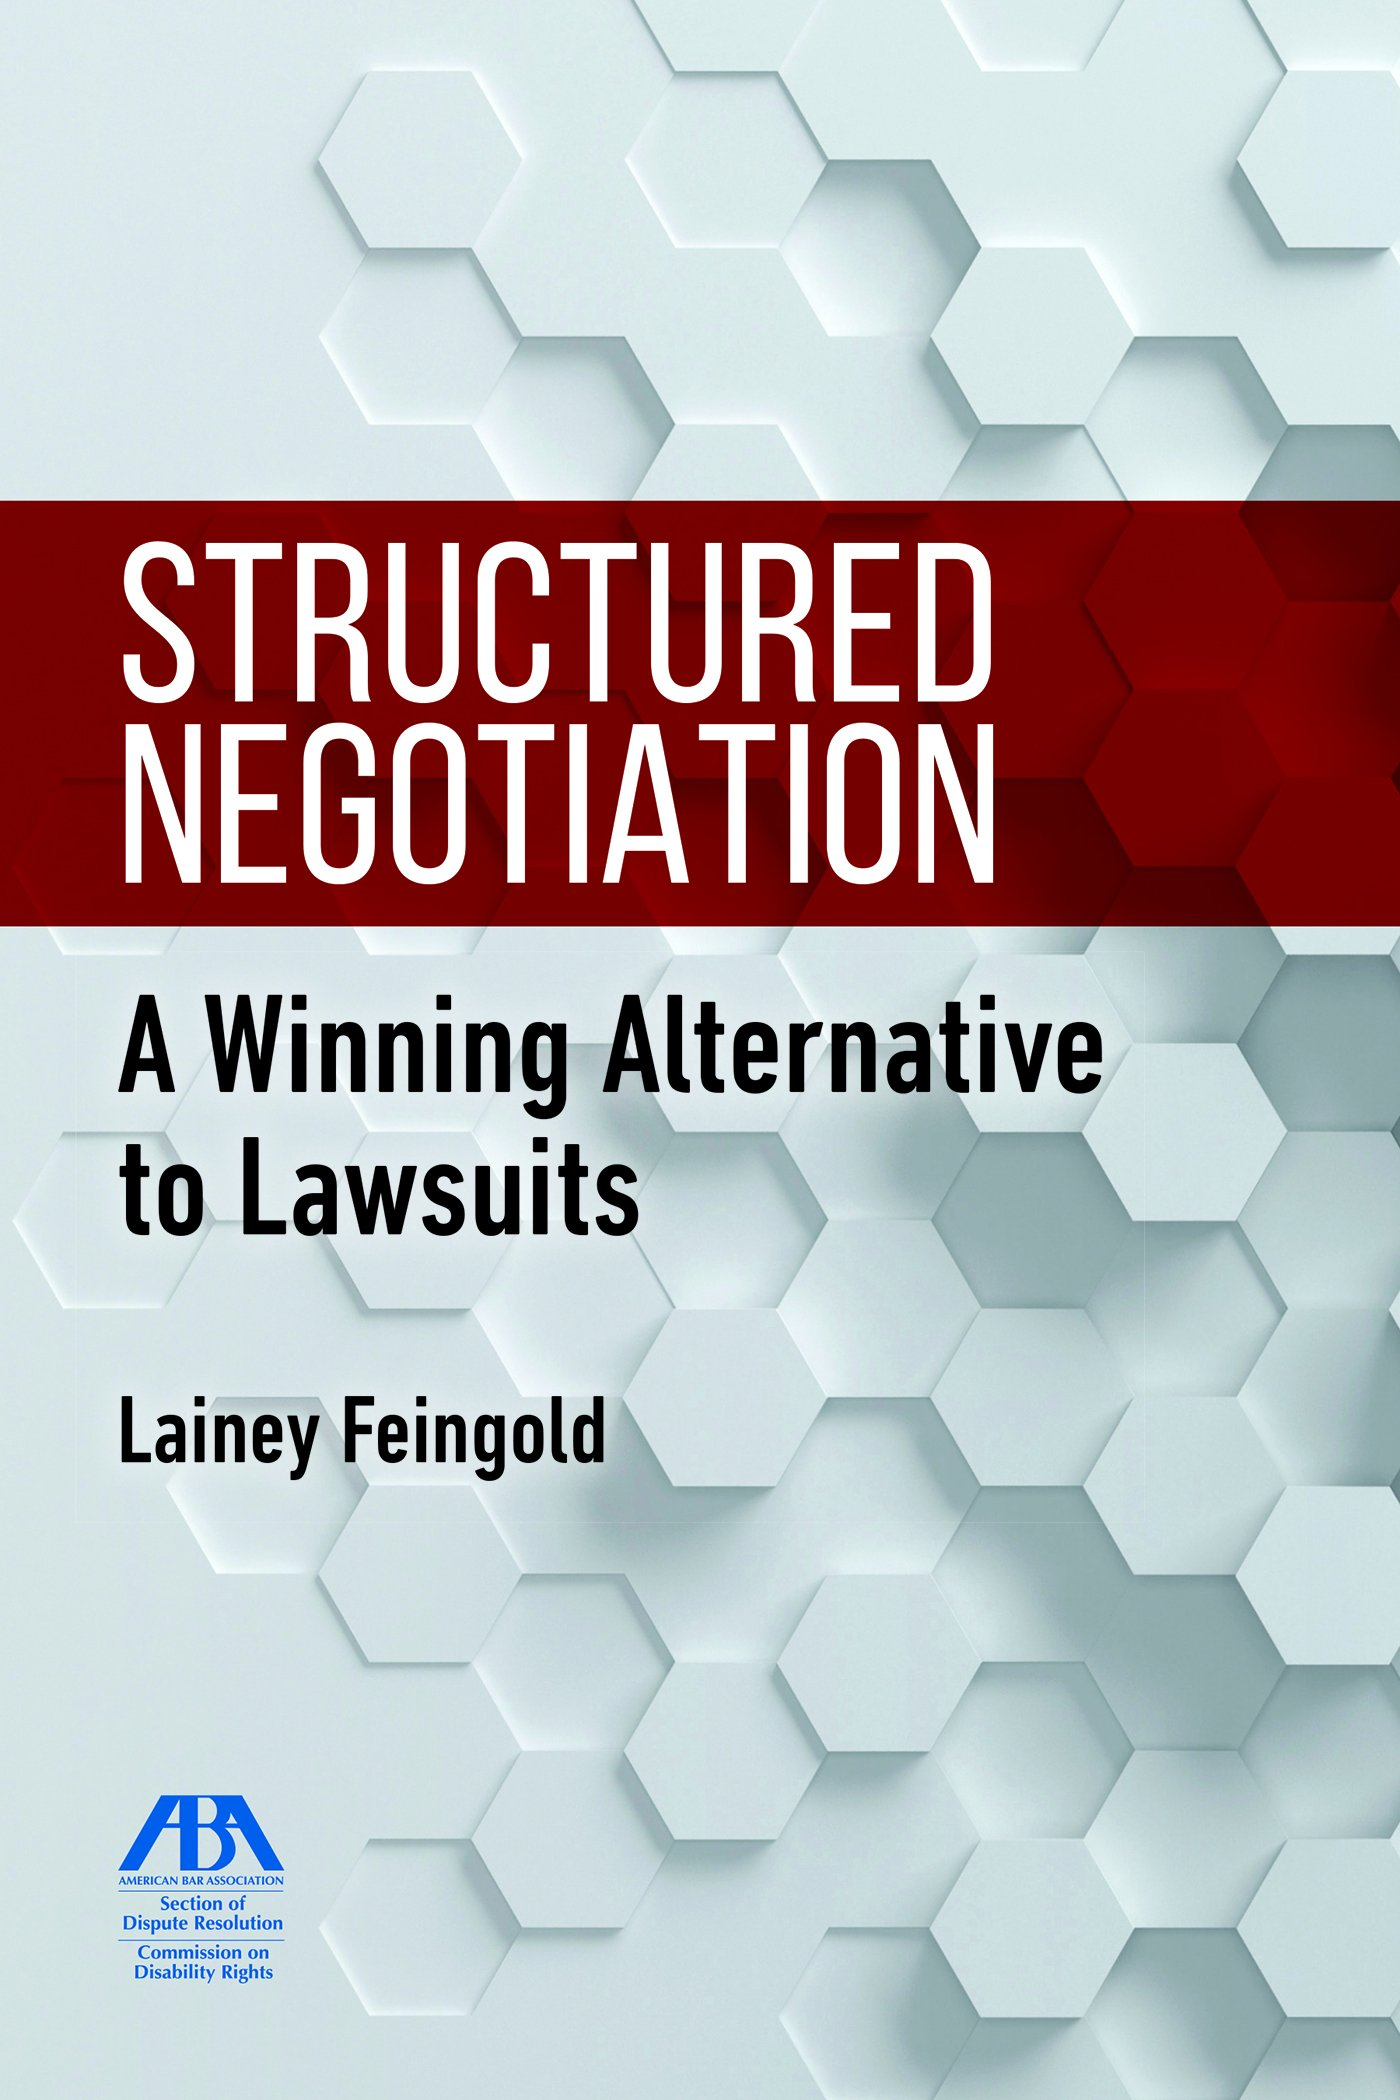 Image for Structured Negotiation: A Winning Alternative to Lawsuits